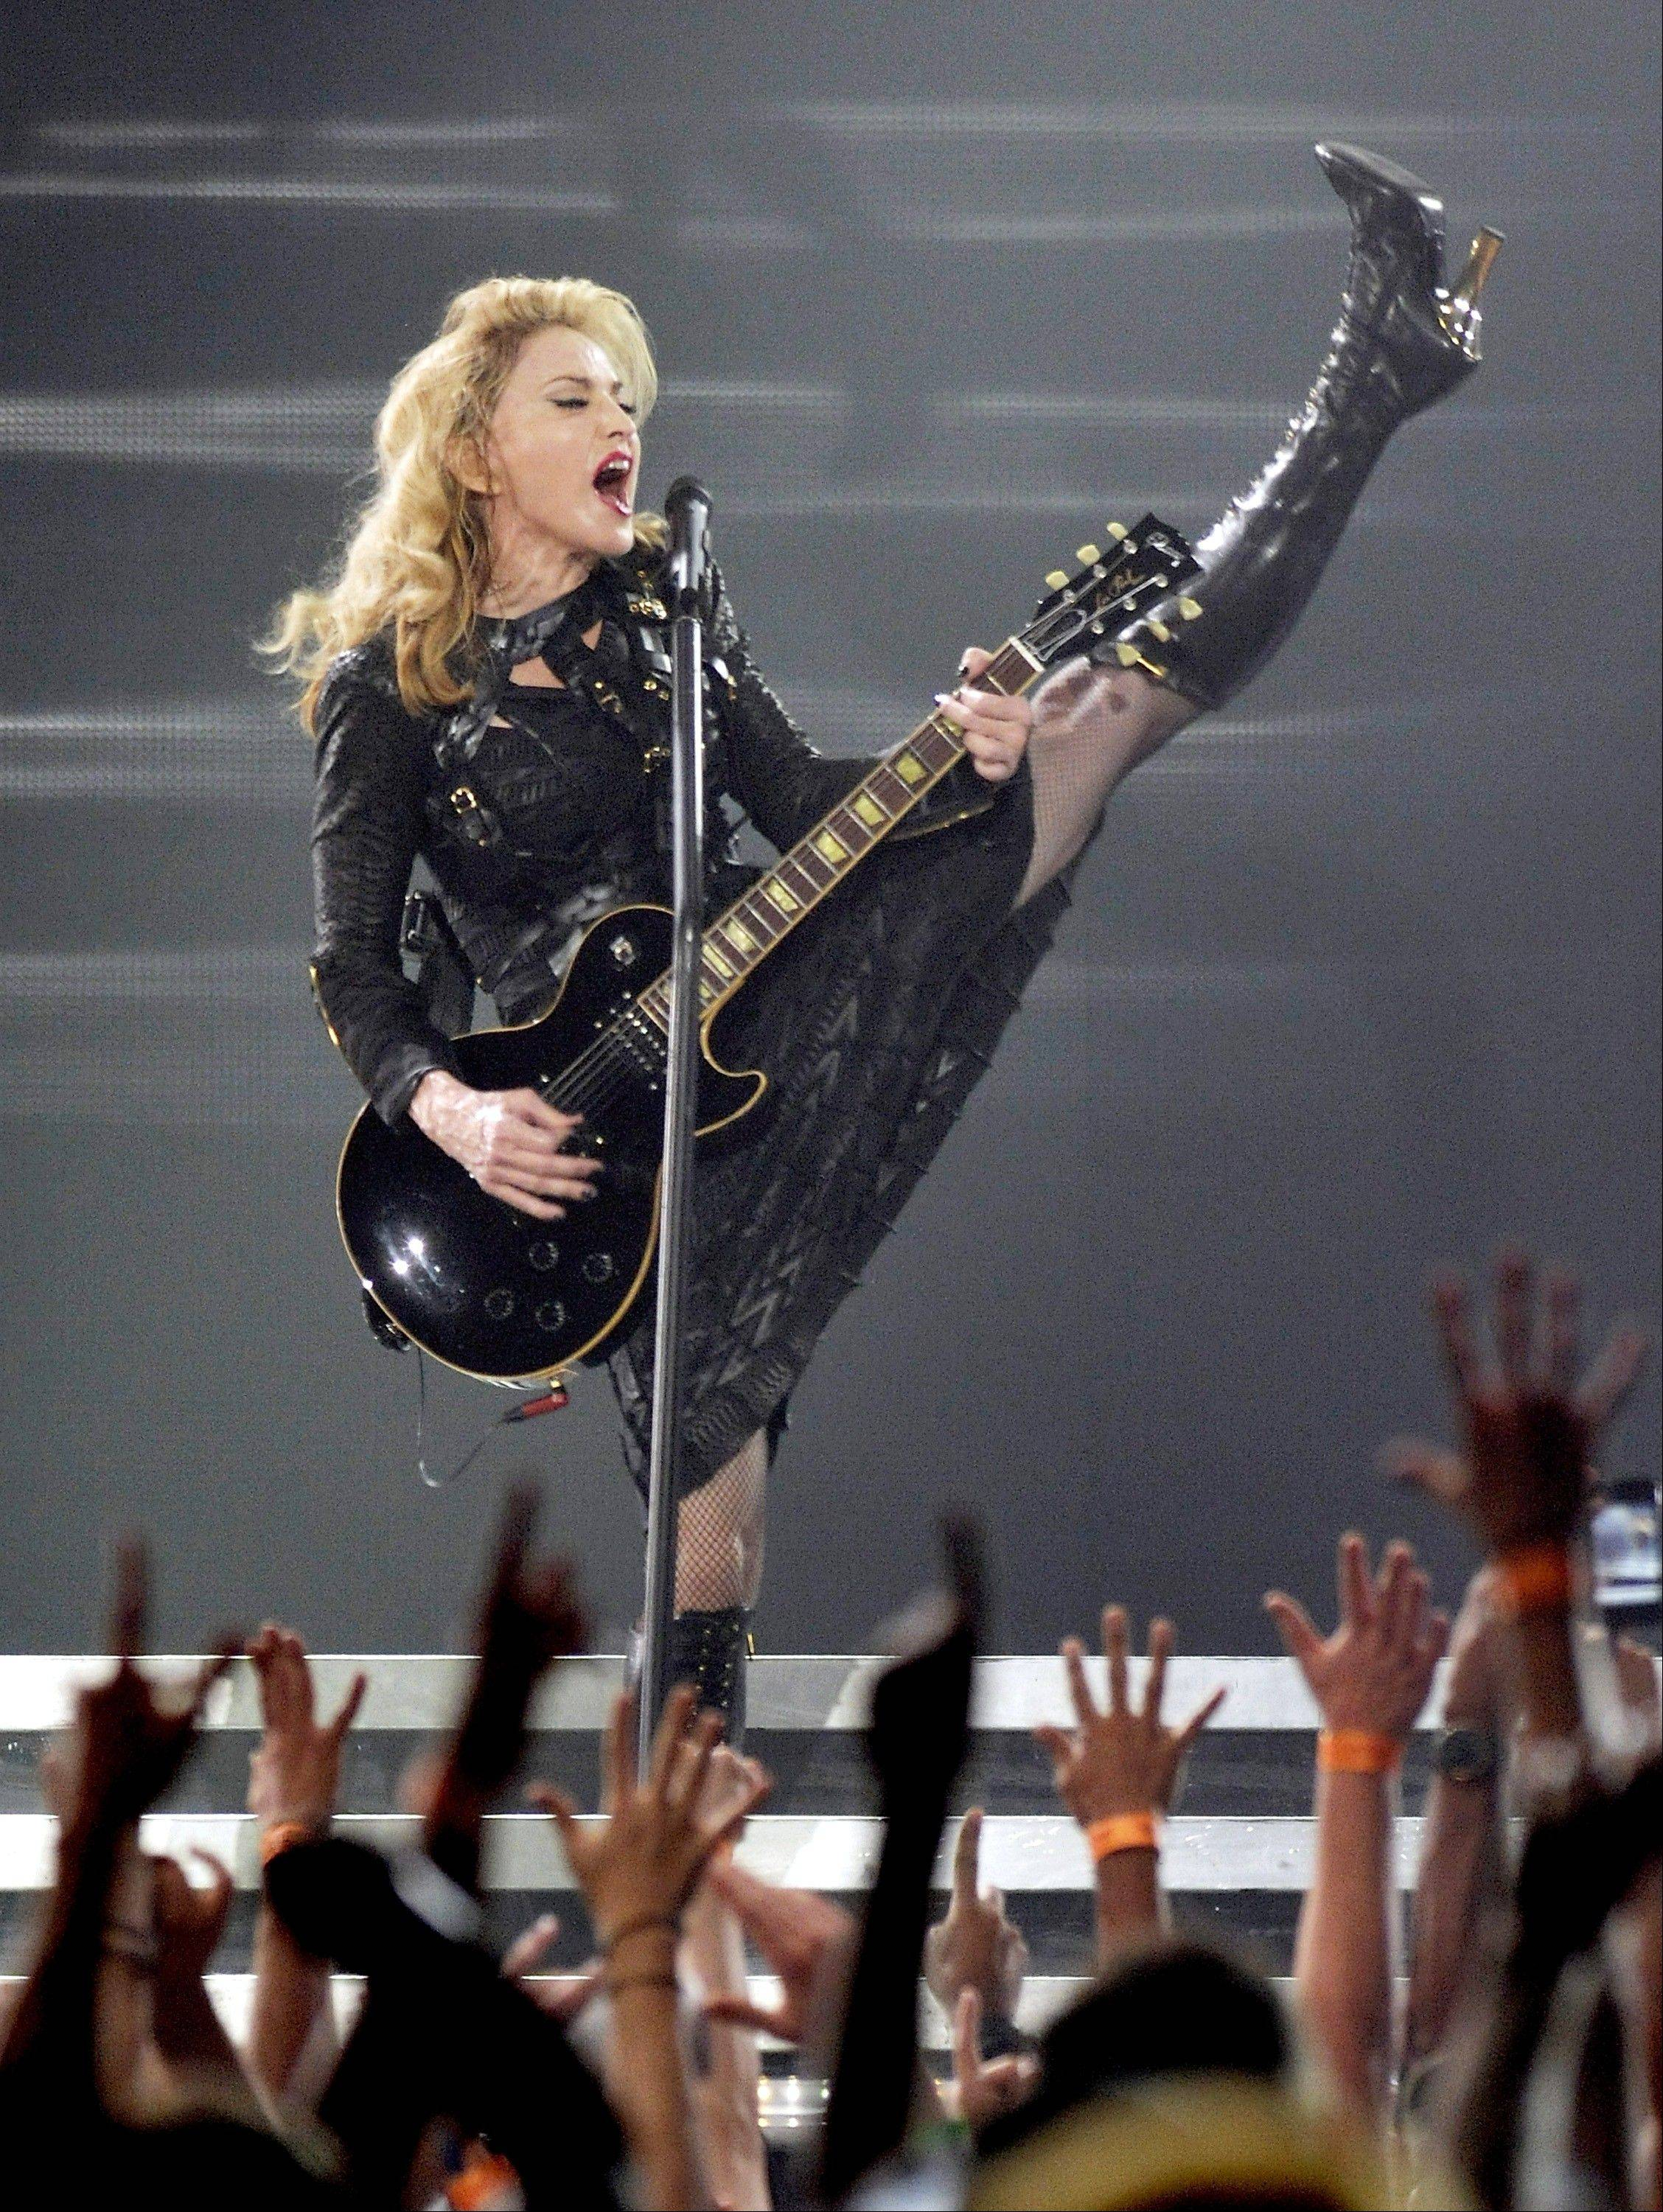 Singer Madonna performs at the Wells Fargo Center Tuesday in Philadelphia.